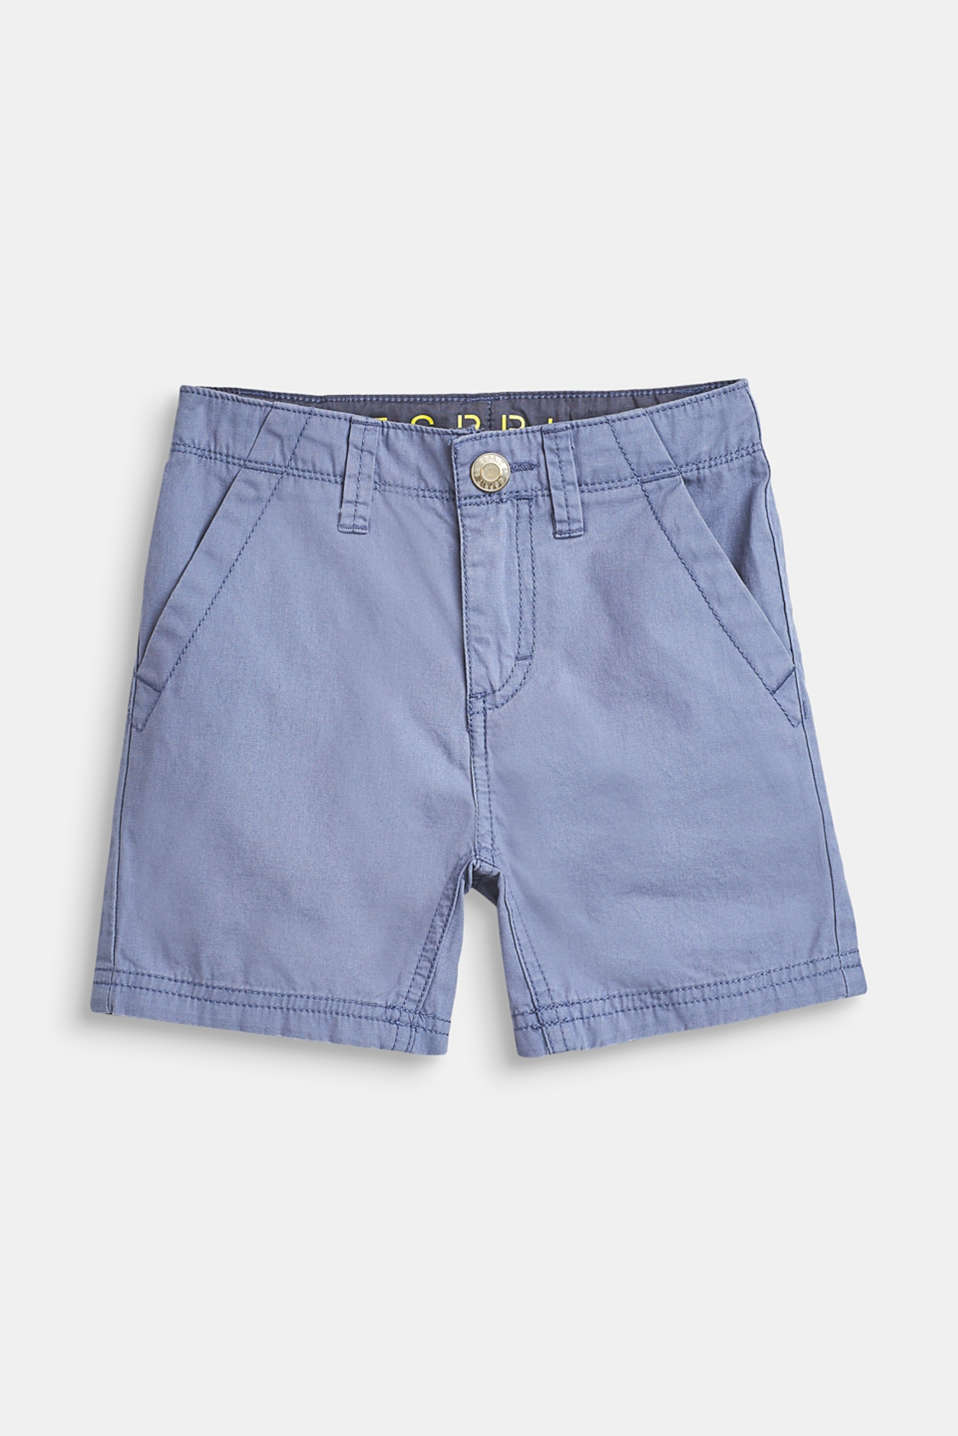 Esprit - 100% cotton shorts, adjustable waistband